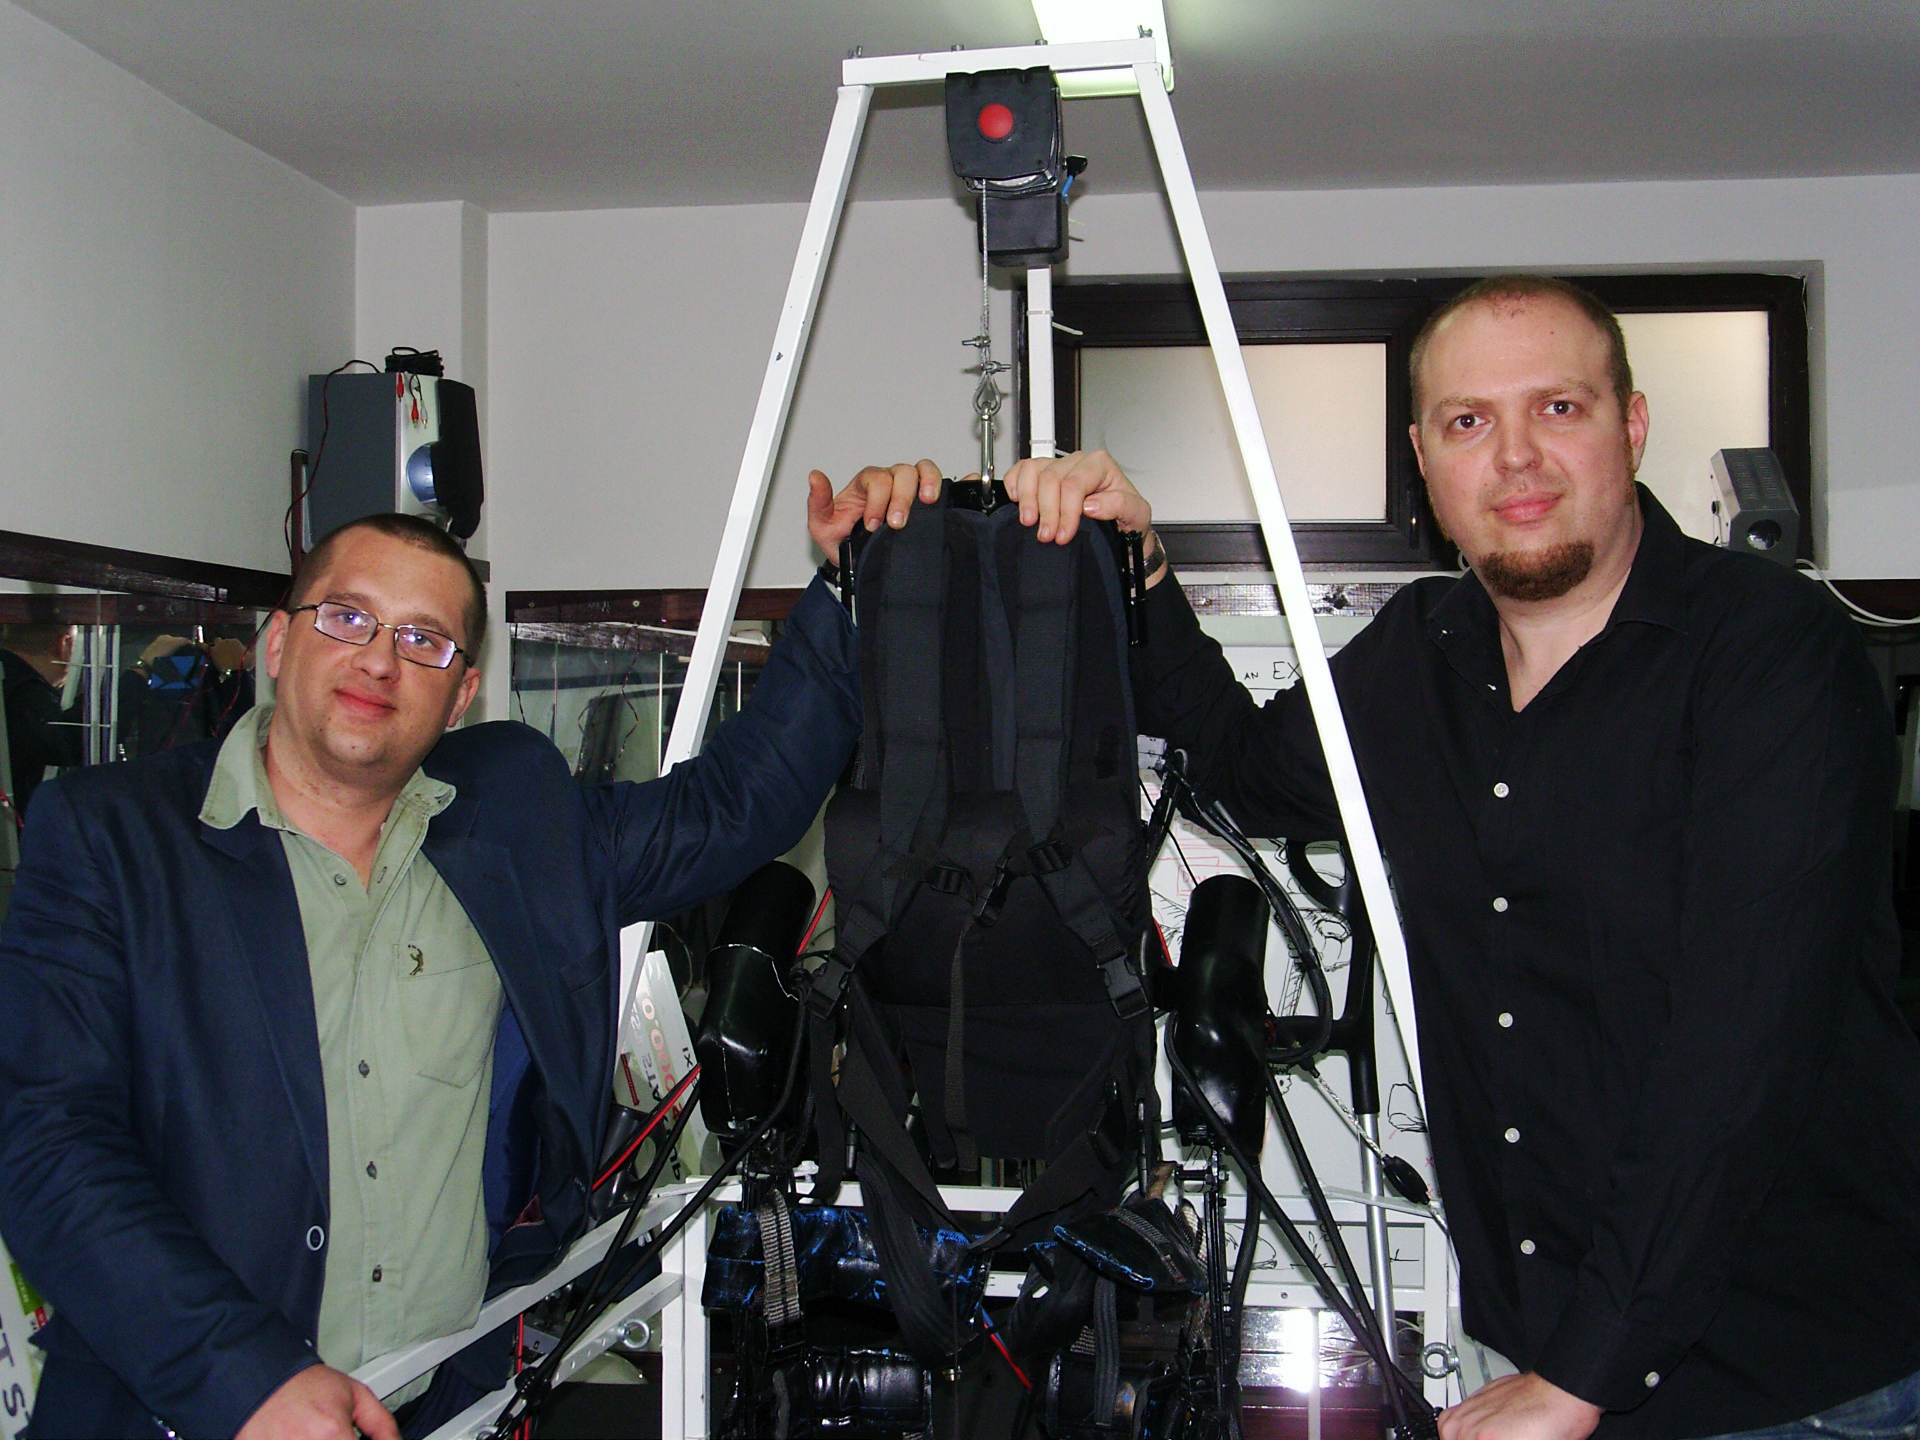 INTERVIEW - Romanian medical exoskeletons maker Axosuits to hit market by-mid 2017